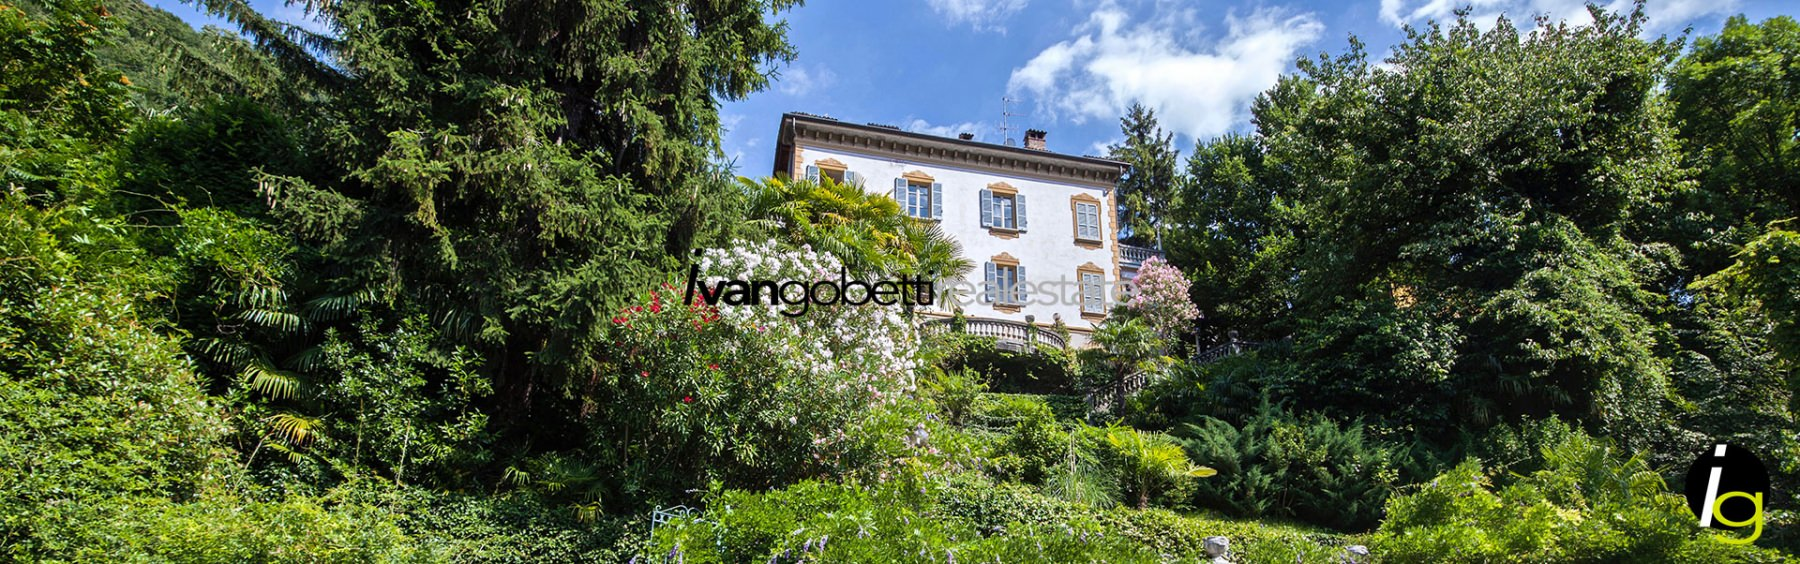 Come Lake Blevio Beautiful historic villa for sale